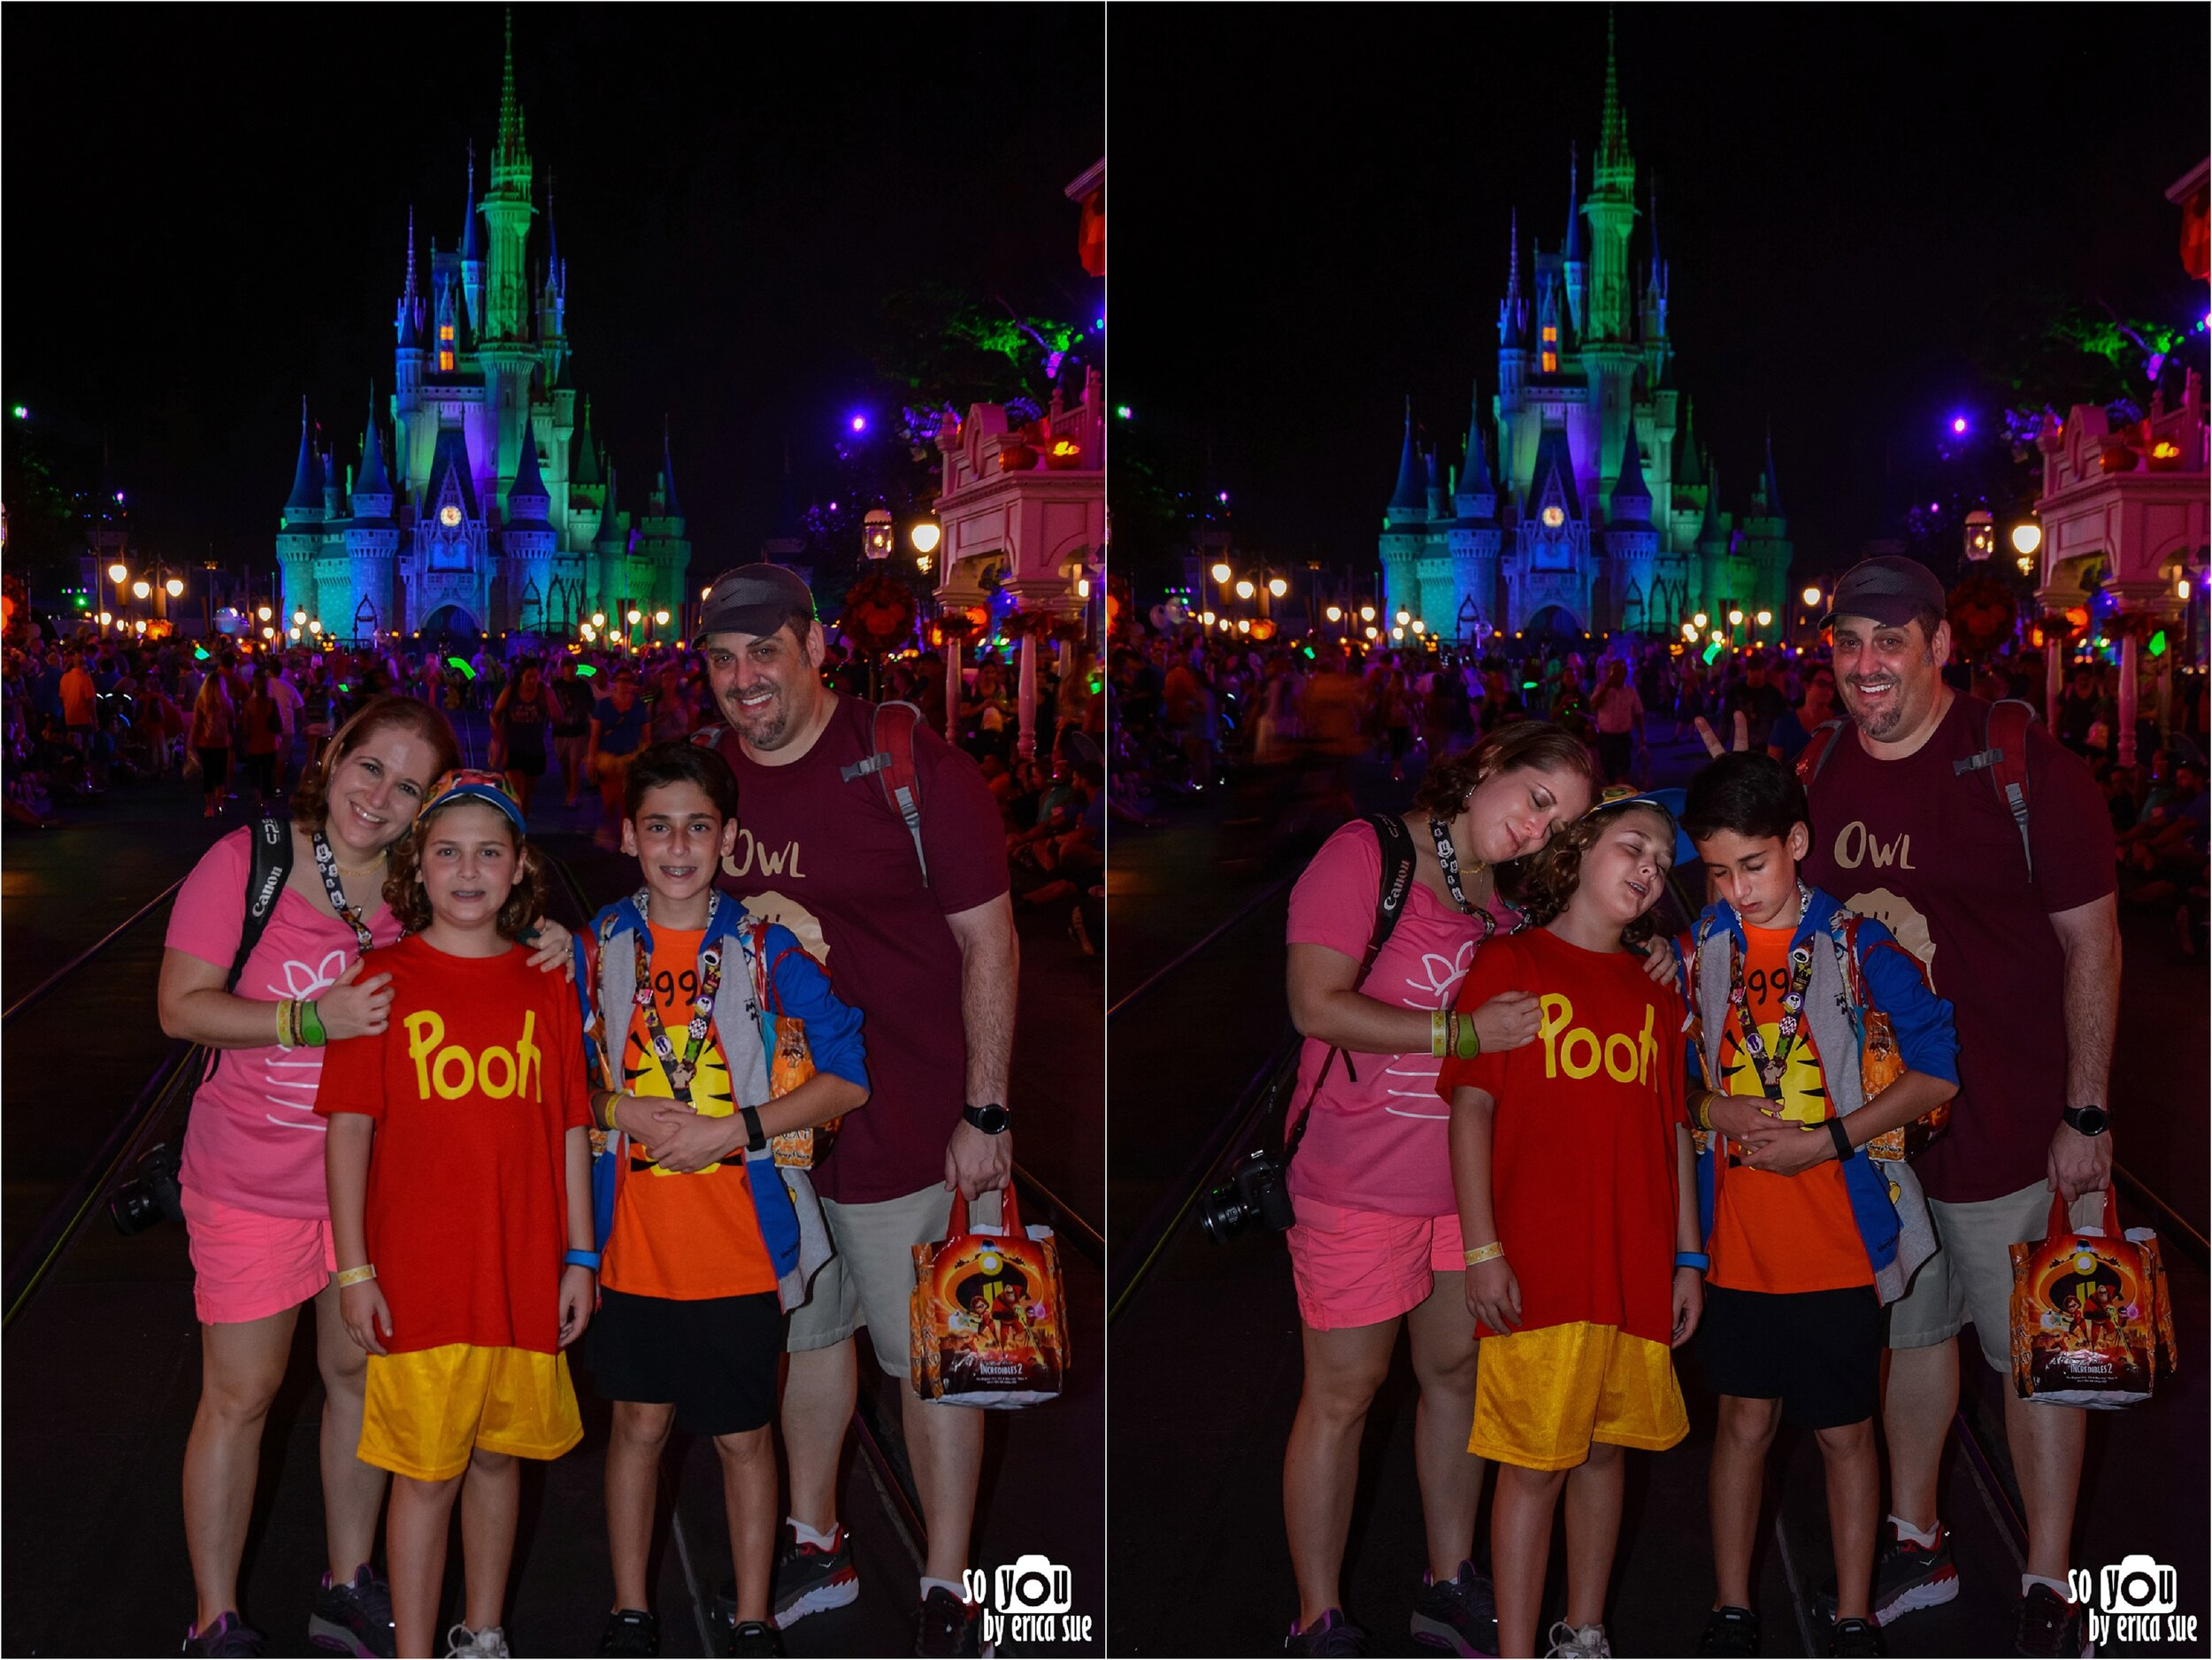 so-you-by-erica-sue-disney-photography-family-mickey-not-so-scary-partin-ranch-corn-maze-old-town-orlando-413792664202 (2).jpg